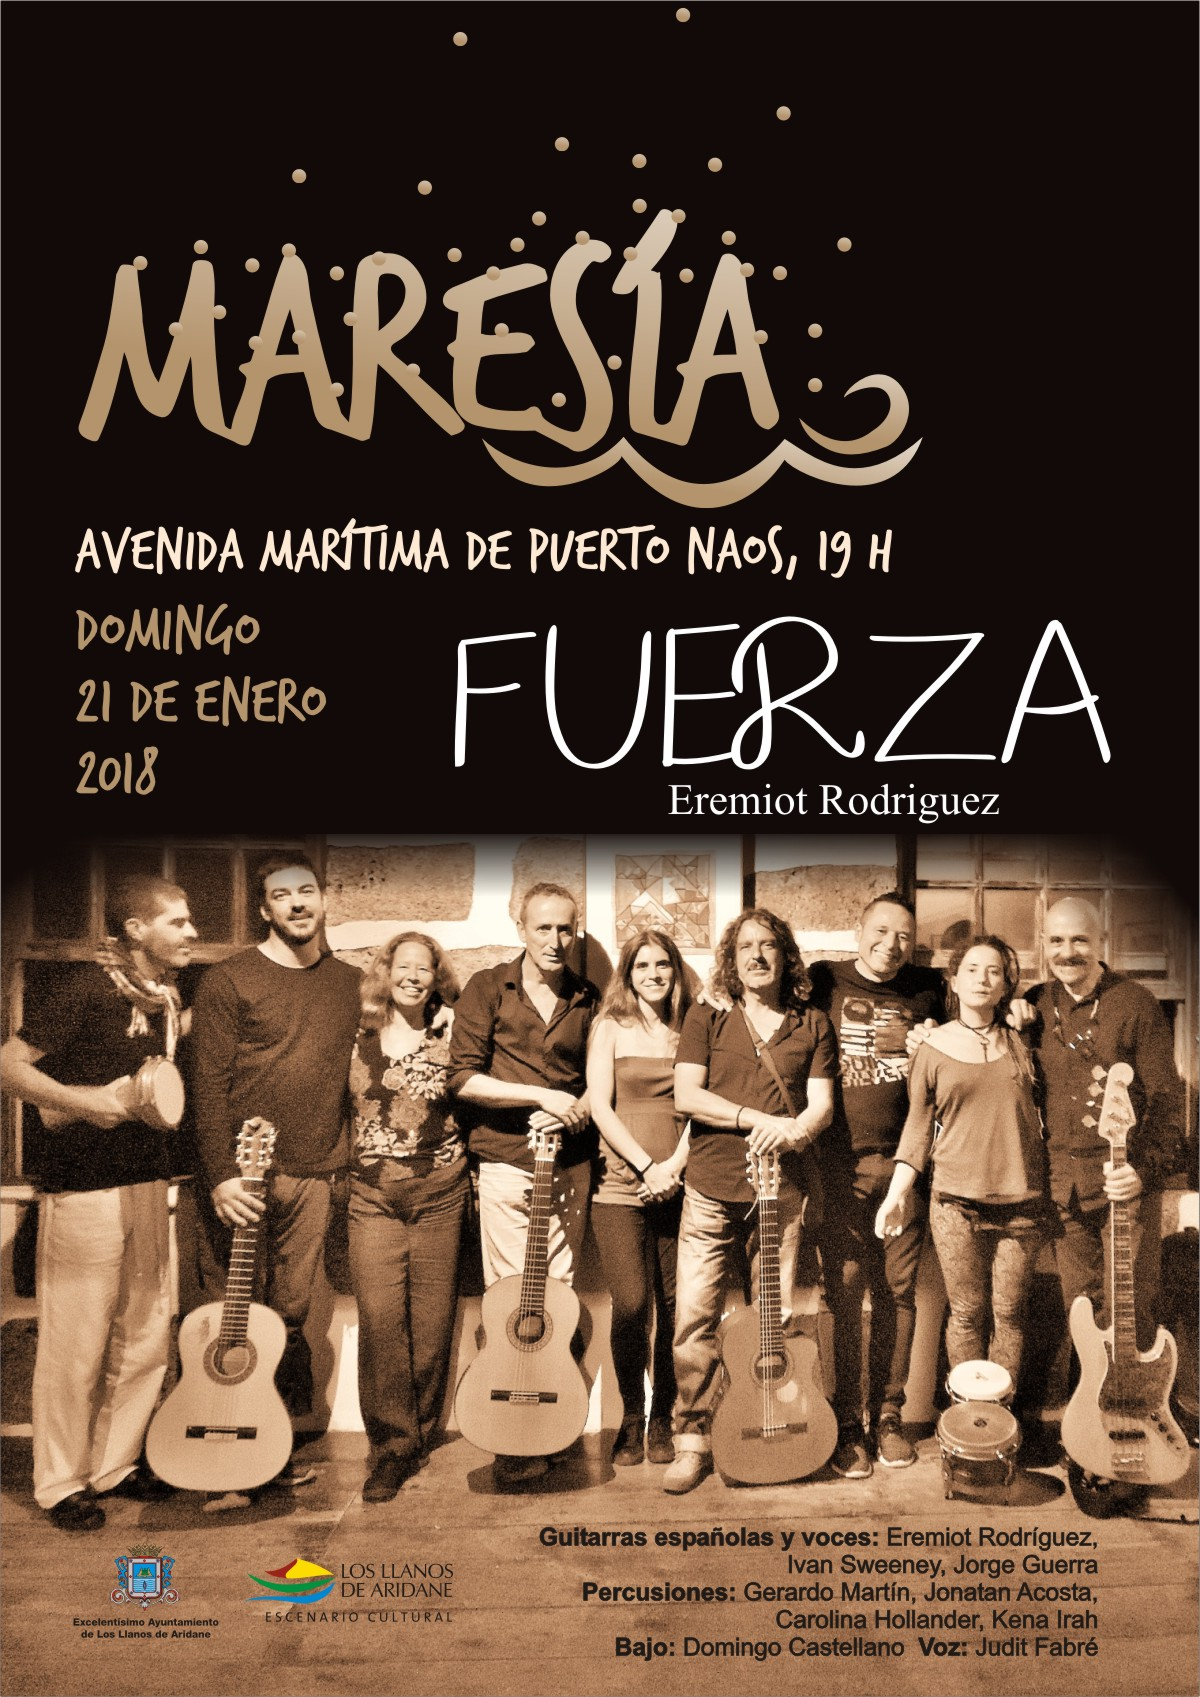 2018 01 18 Fuerza Maresia